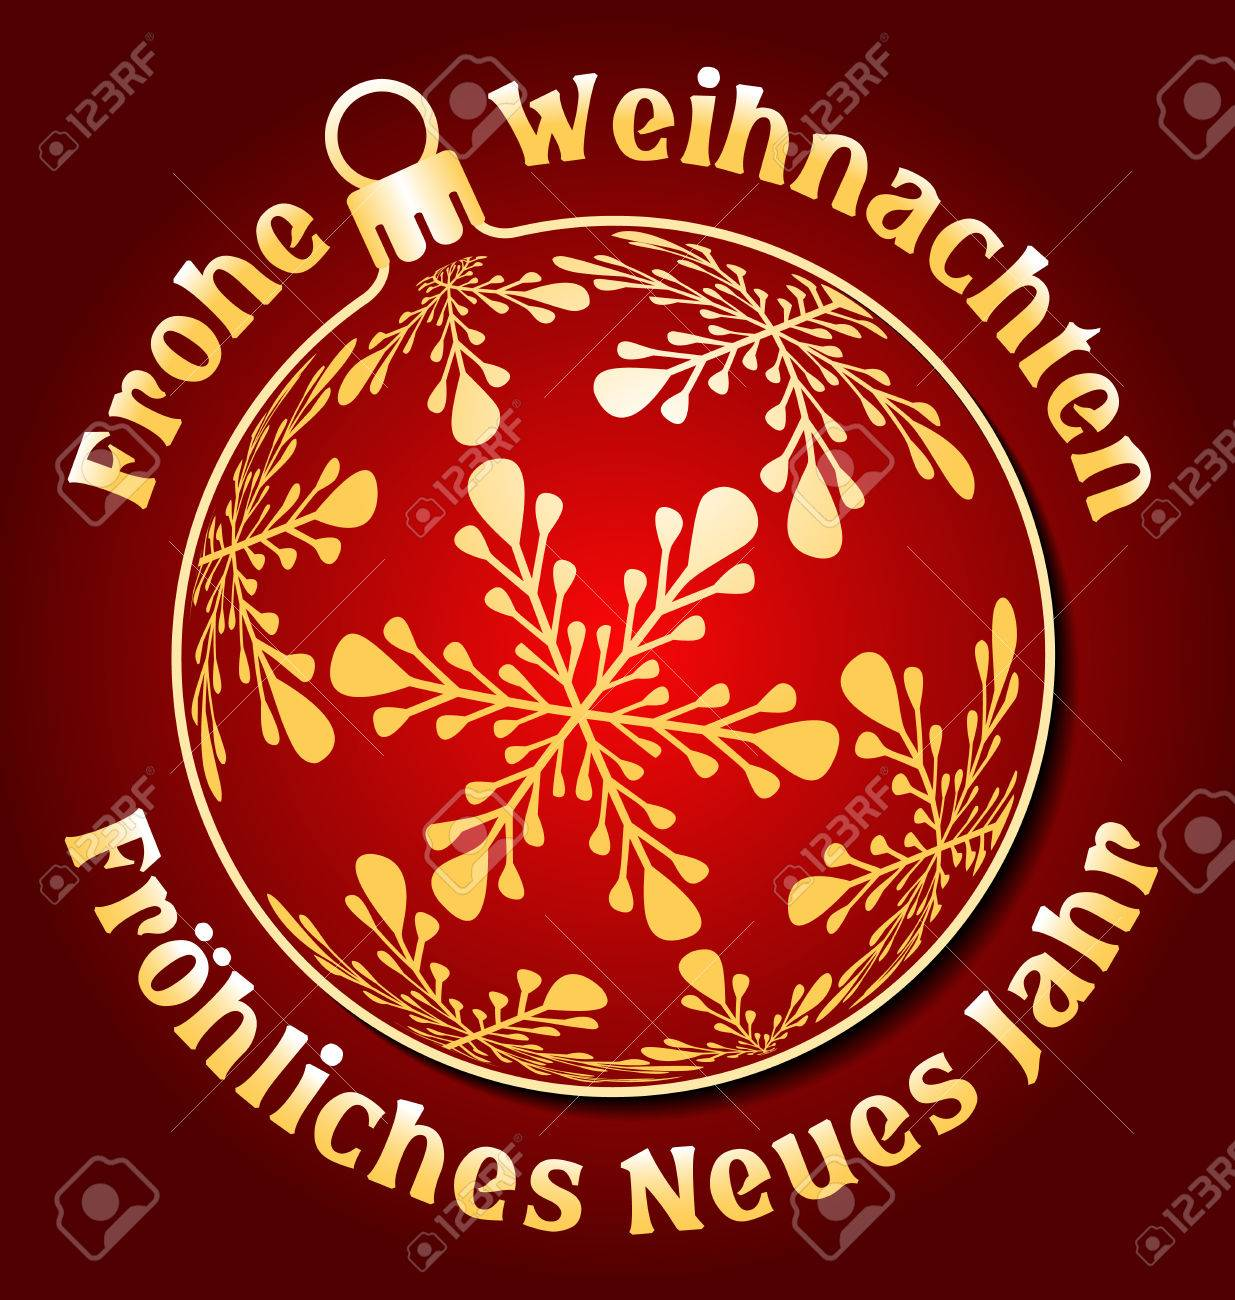 German merry christmas and happy new year background germany german merry christmas and happy new year background germany holiday greeting card or design element m4hsunfo